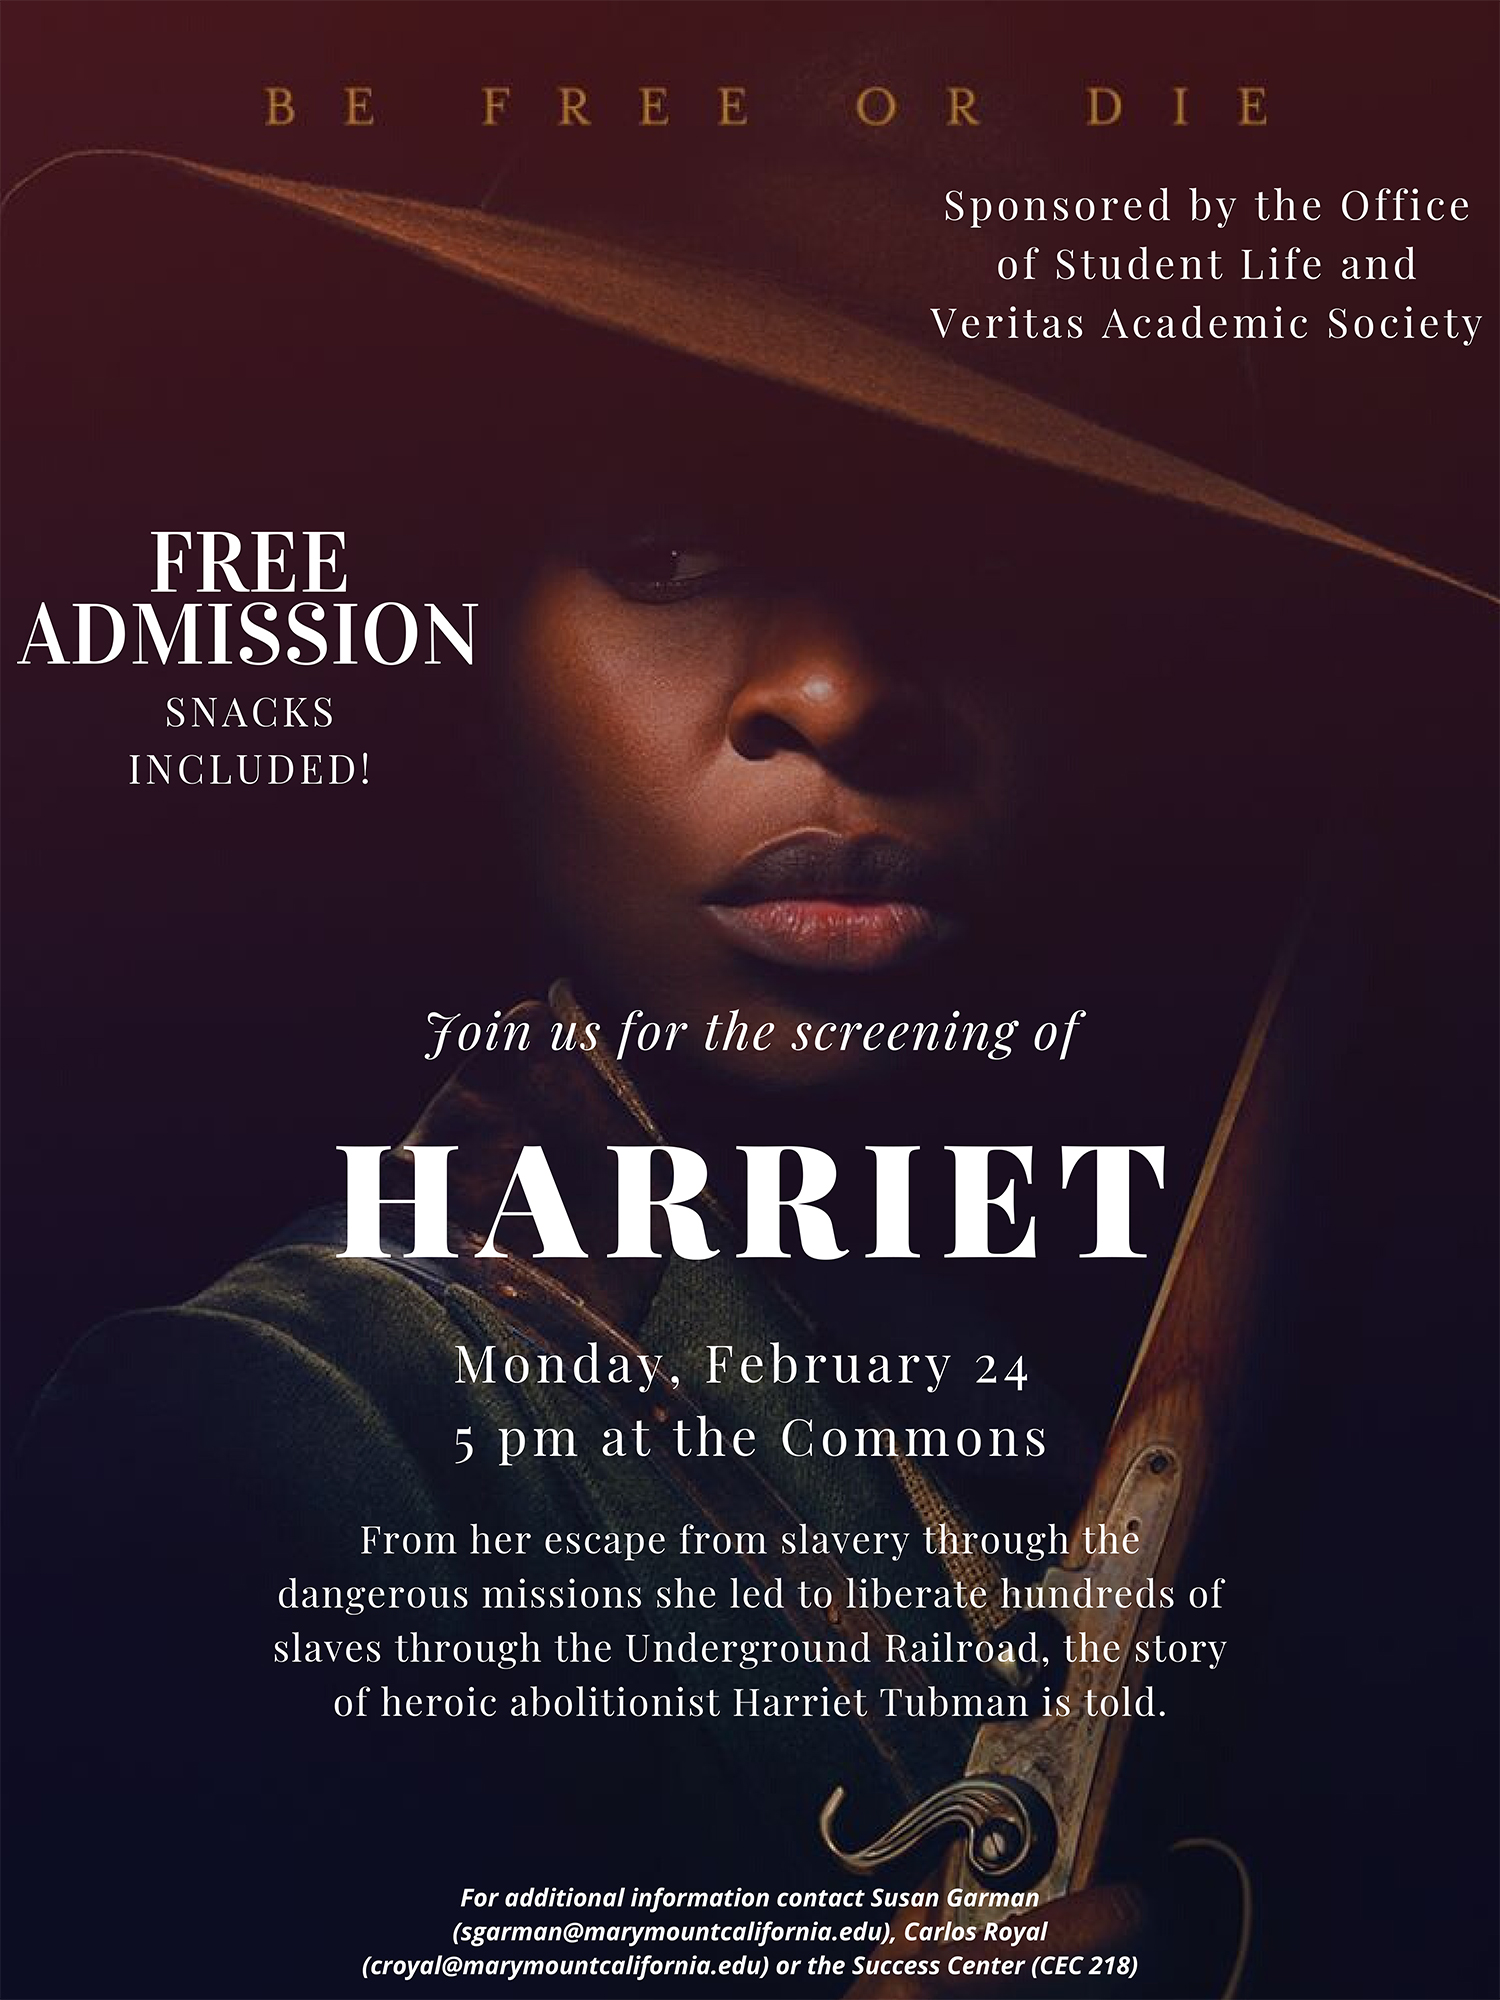 Poster for the screening of Harriet movie